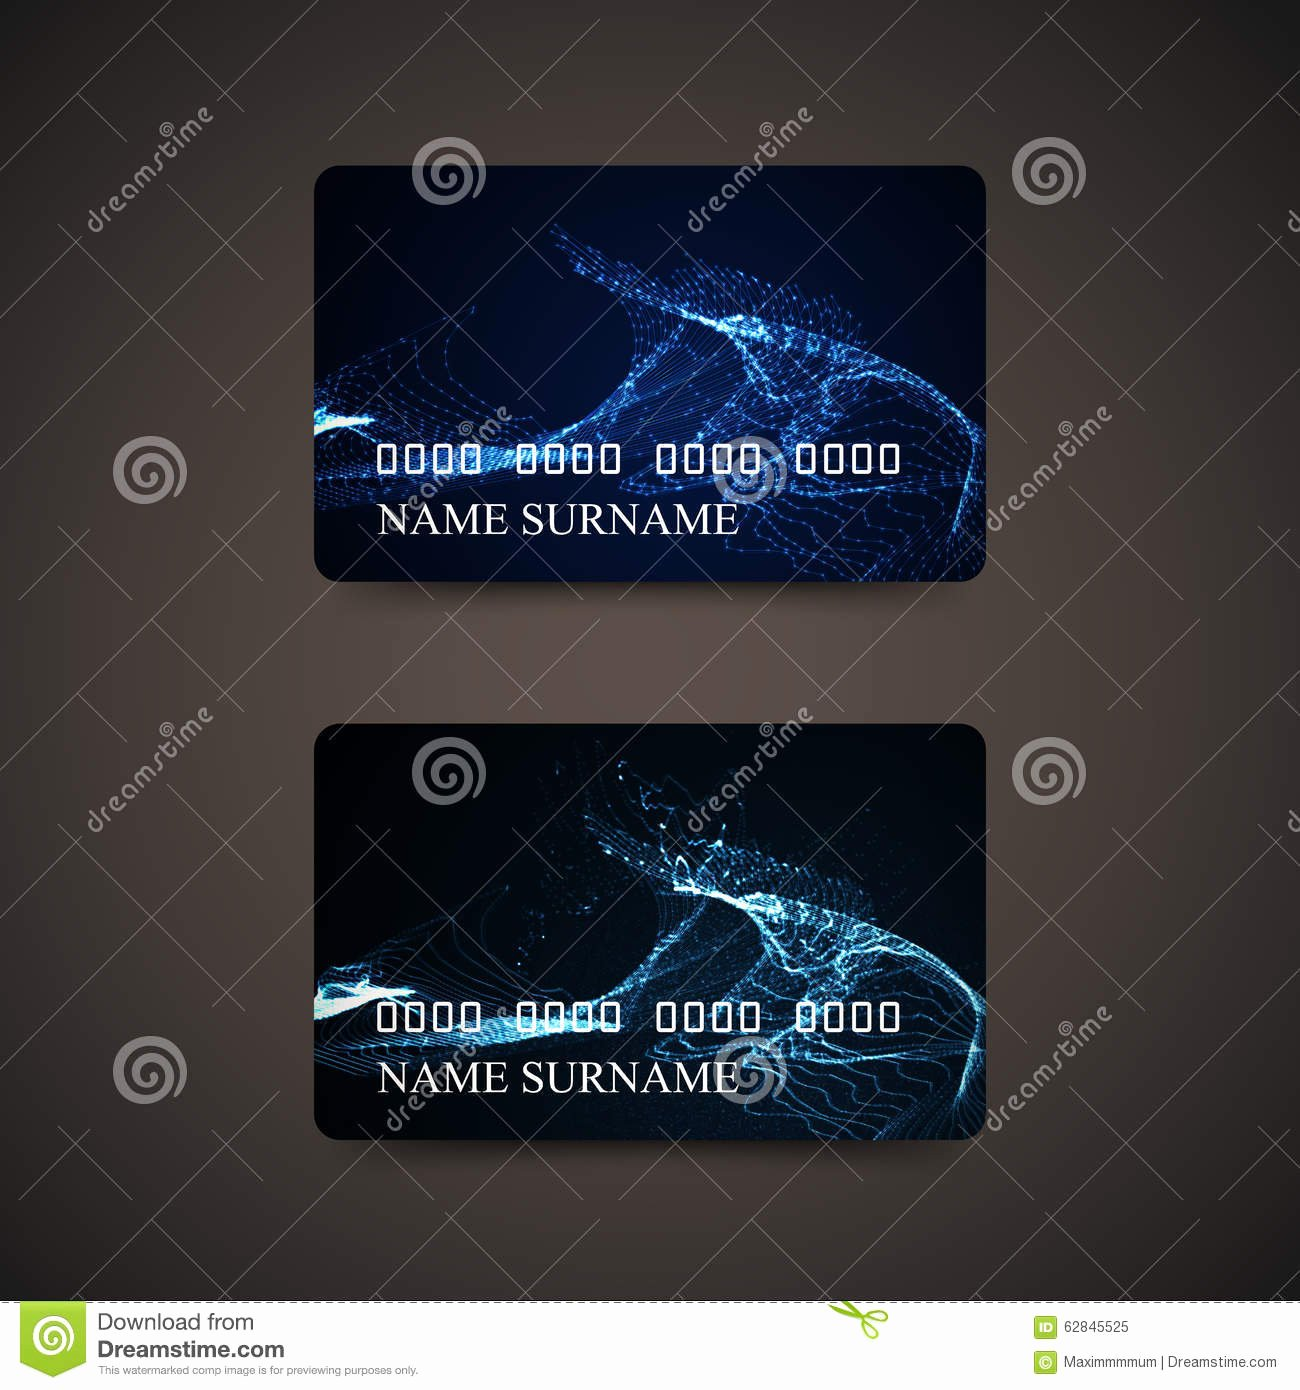 stock illustration t credit card design template cards abstract digital wave particles vector illustration image